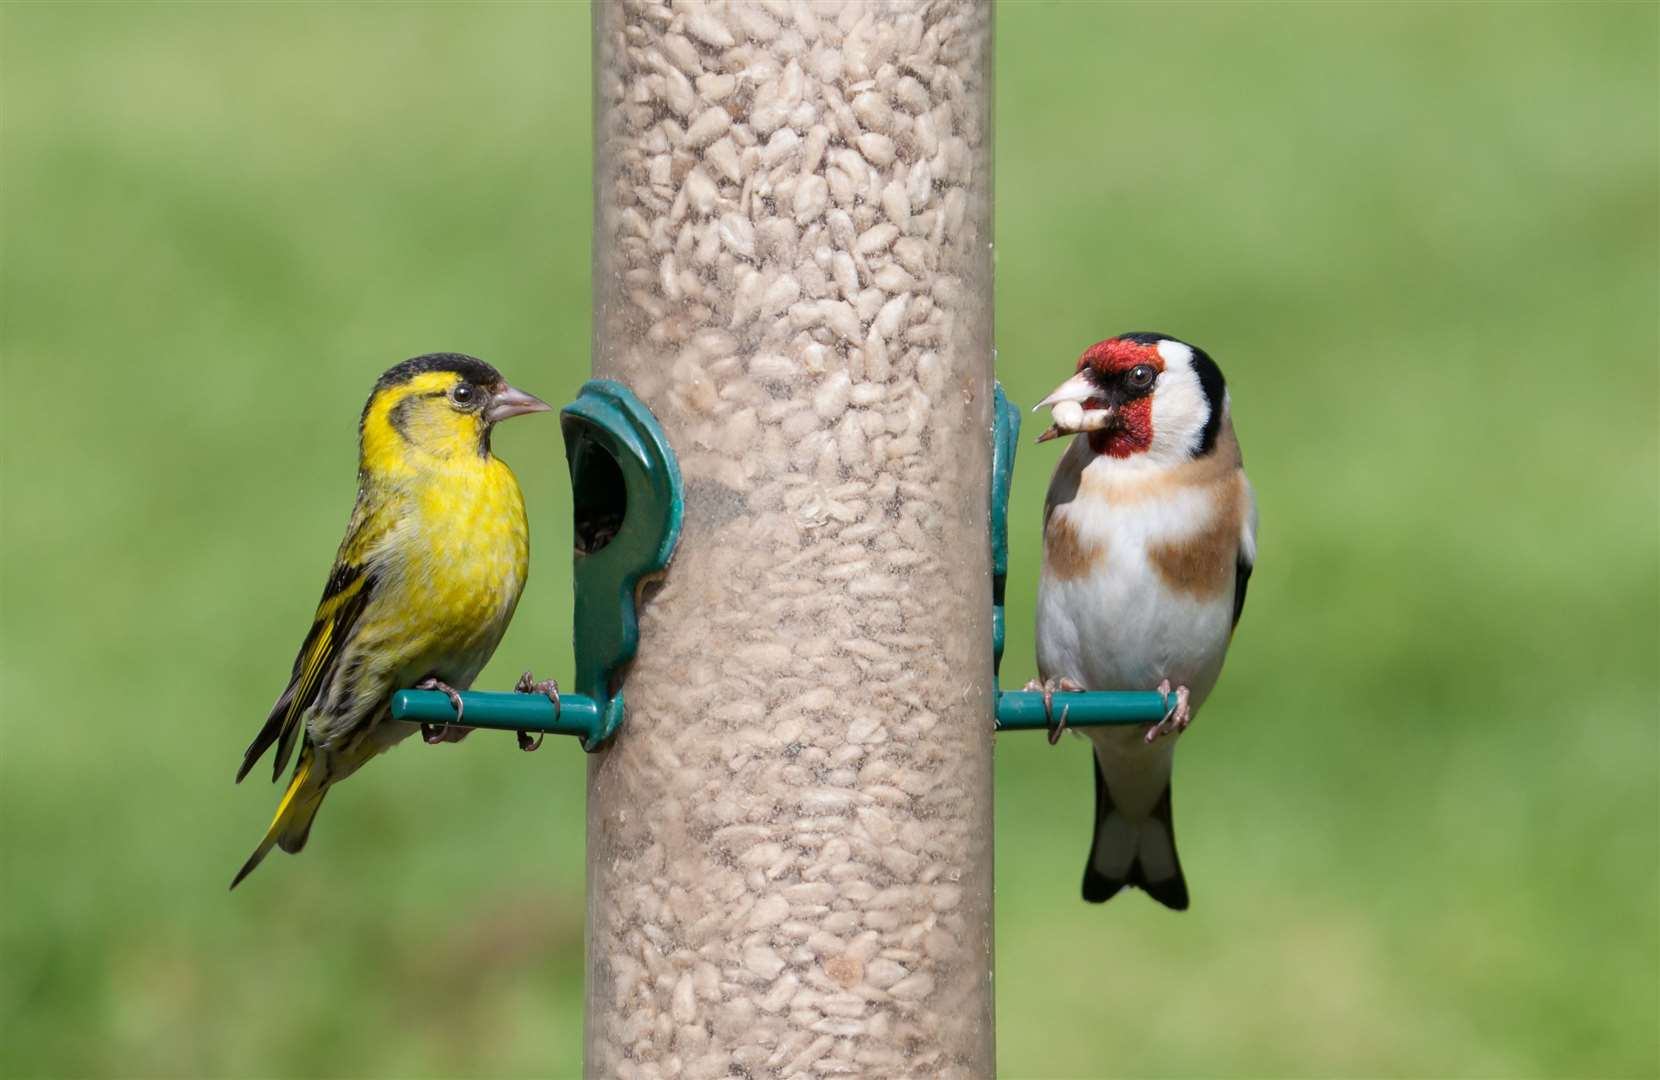 A siskin and goldfinch on a feeder: encourage birds into your garden by regularly putting out food